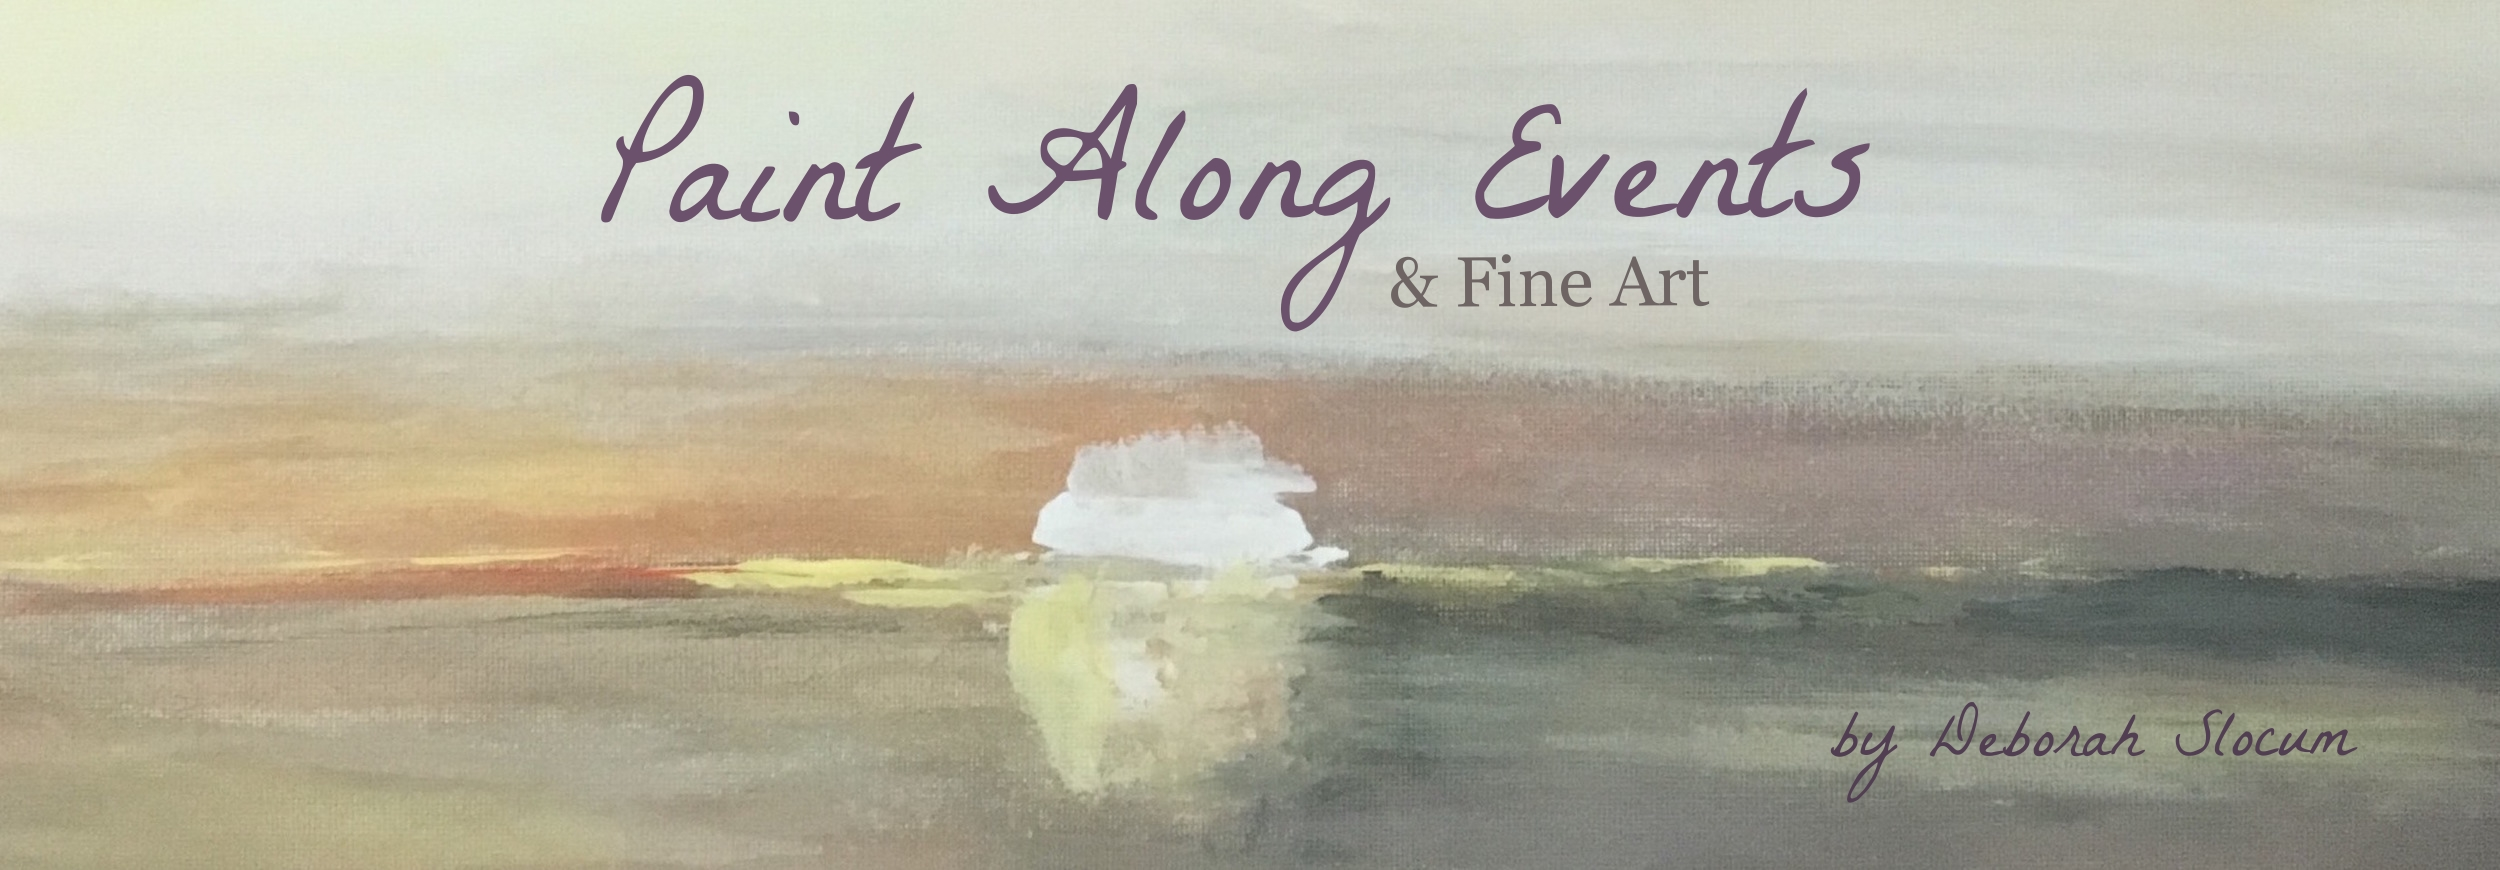 Paint-Along Events and Fine Art by Deborah Slocum